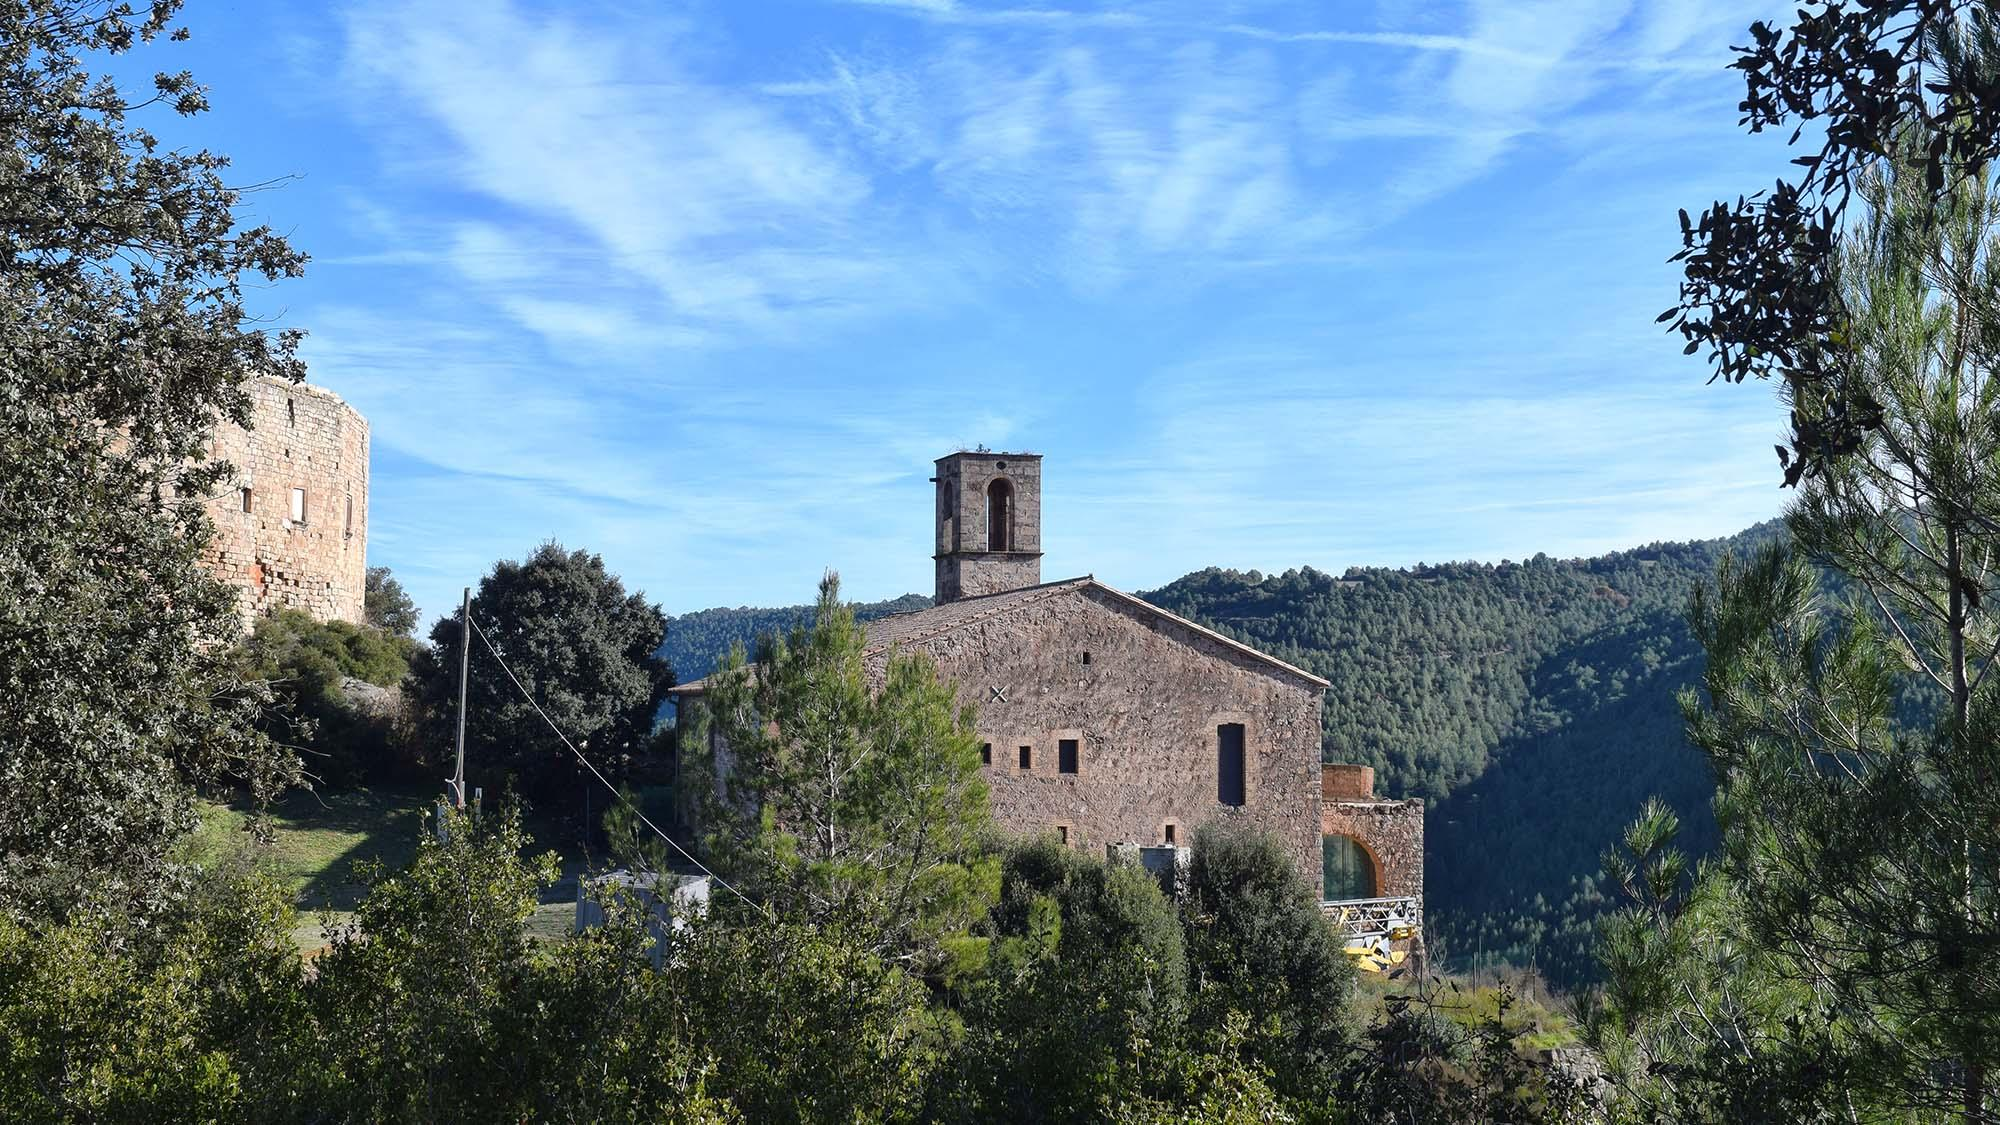 Church Sant Miquel de Castellar